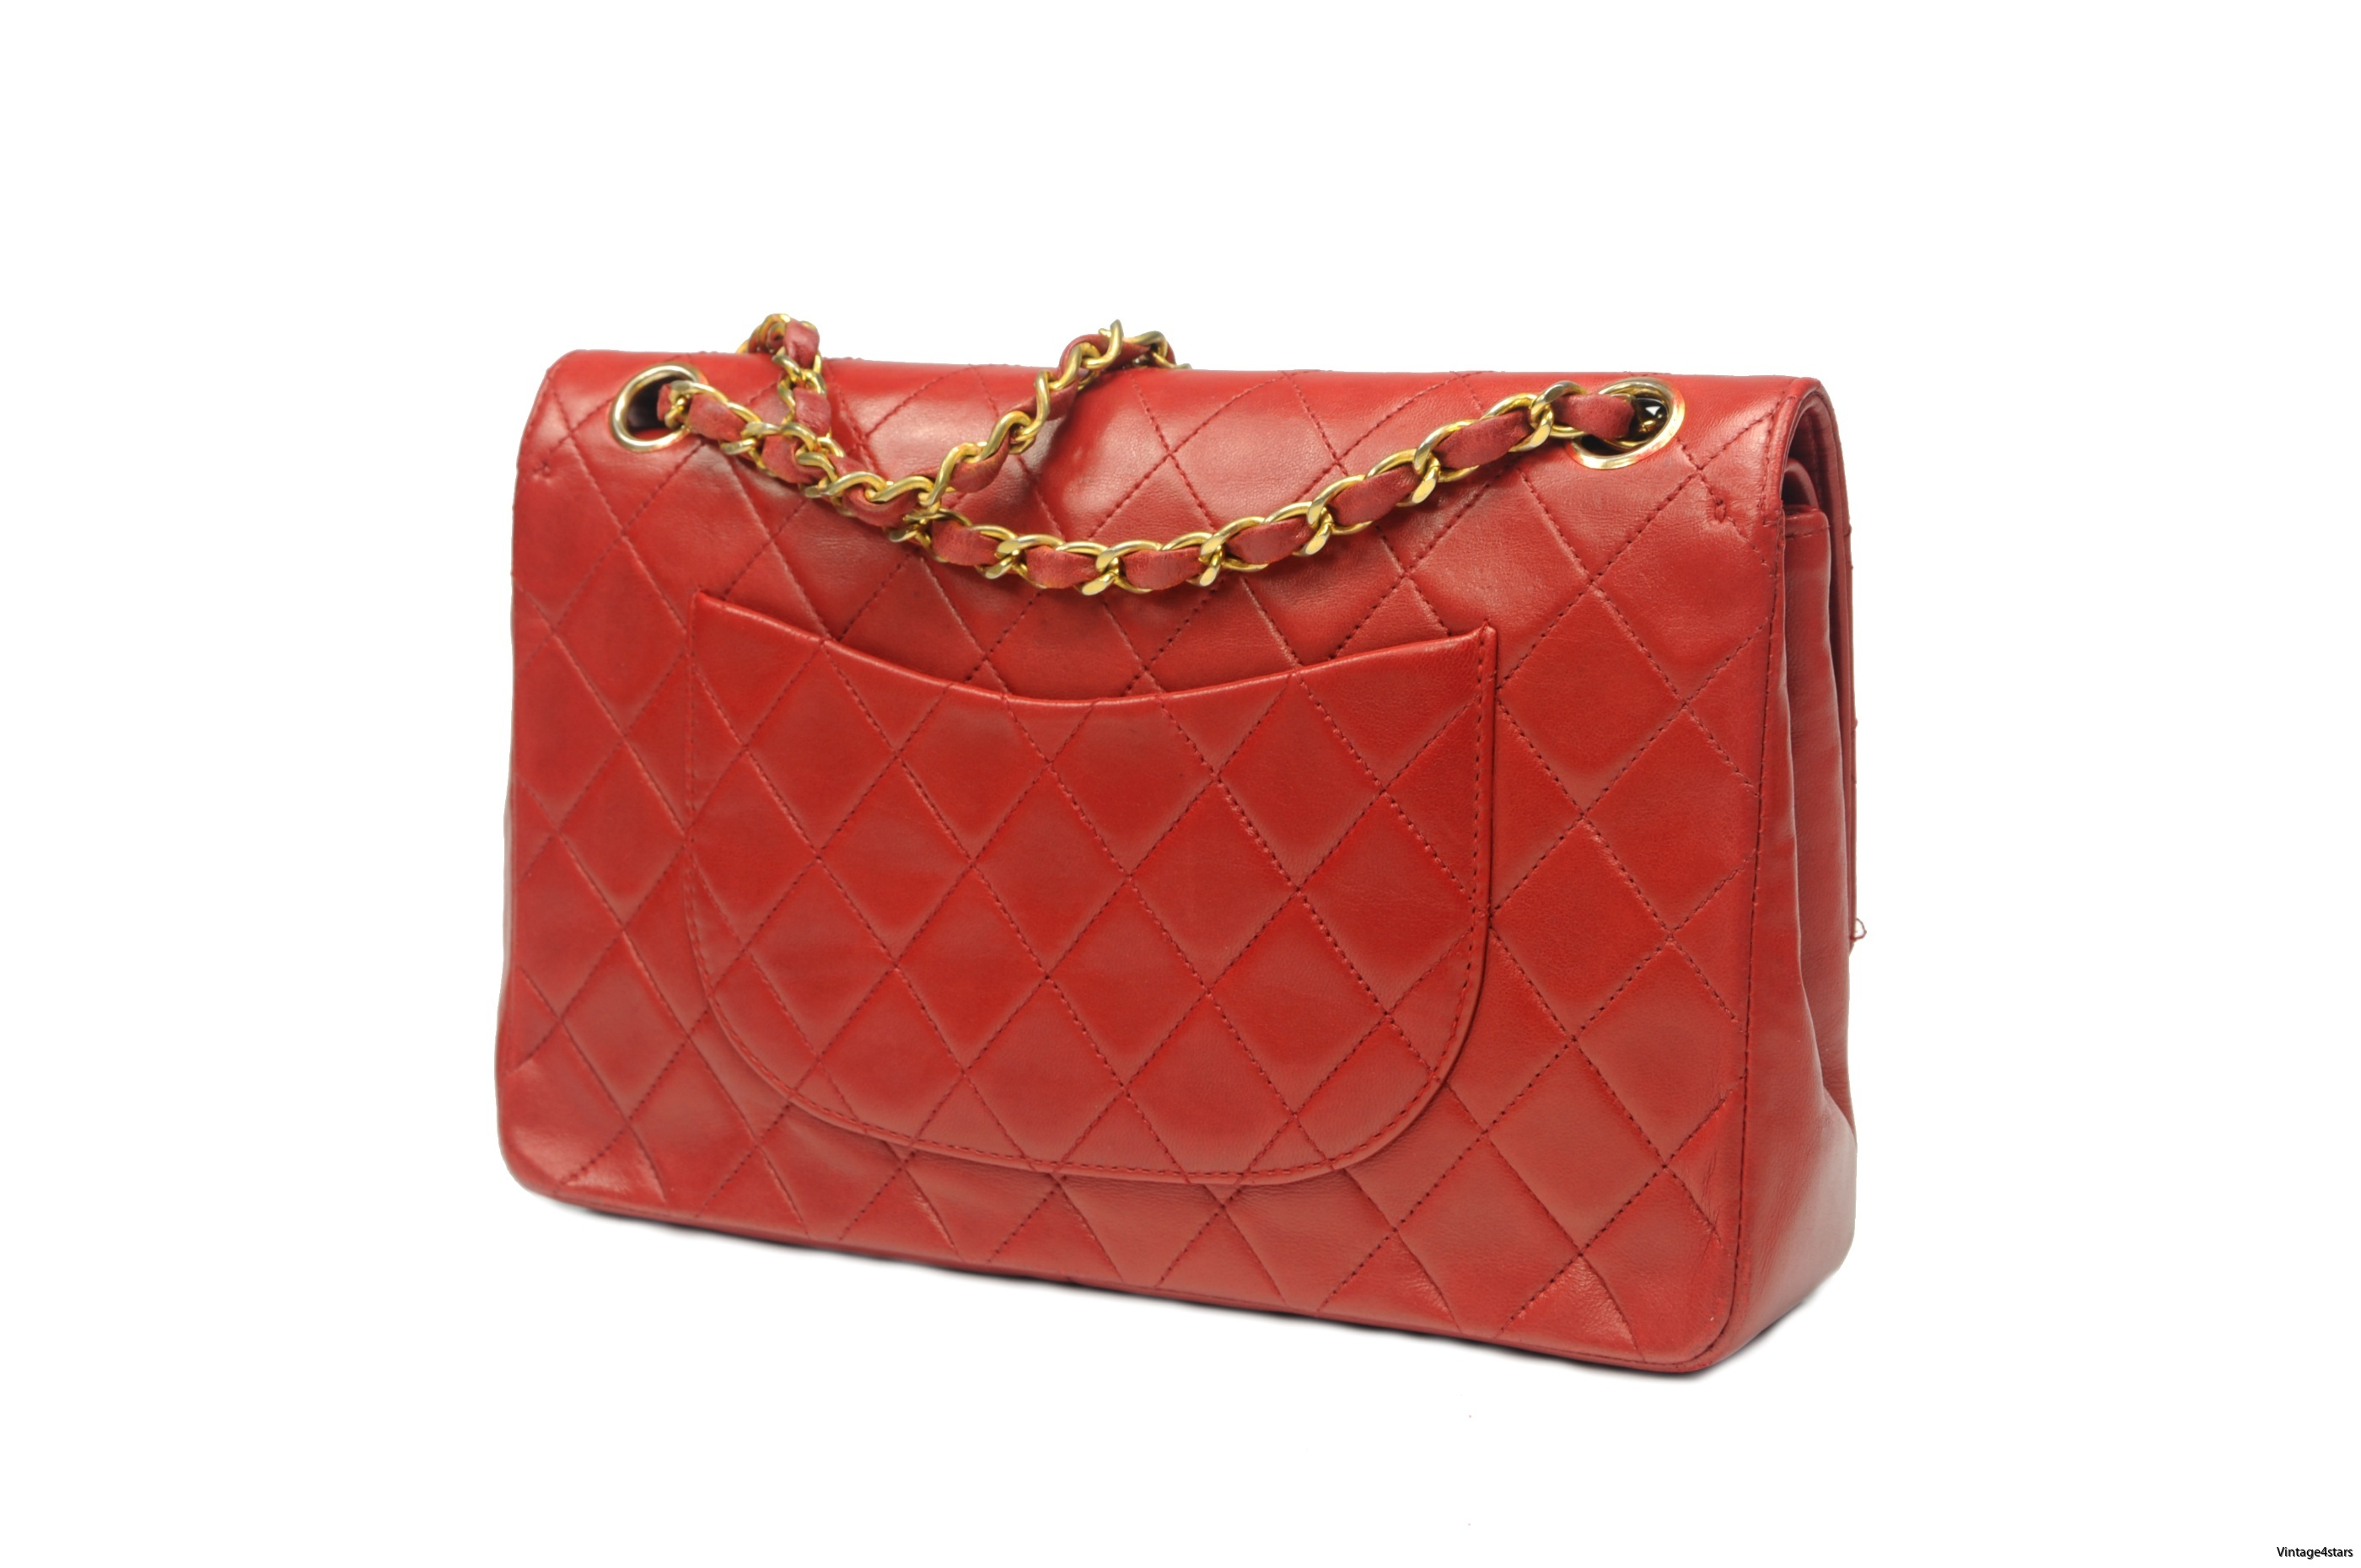 CHANEL Double Flap red 2